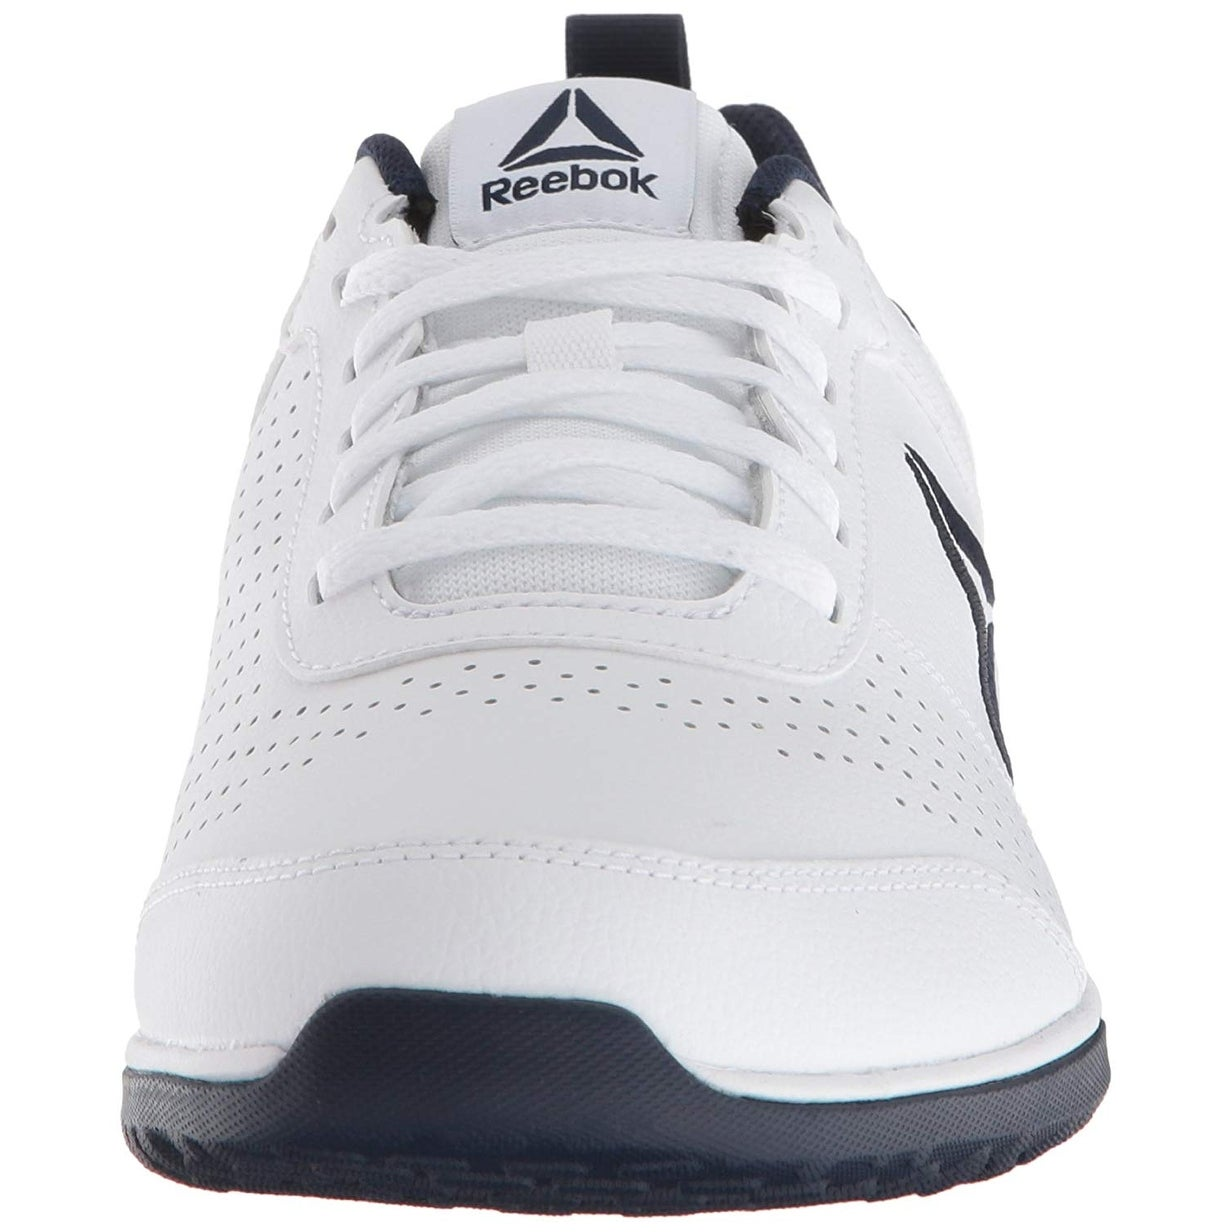 2e029eb38256 Shop Reebok Men s CXT Cross Trainer - Free Shipping On Orders Over  45 -  Overstock - 26267116